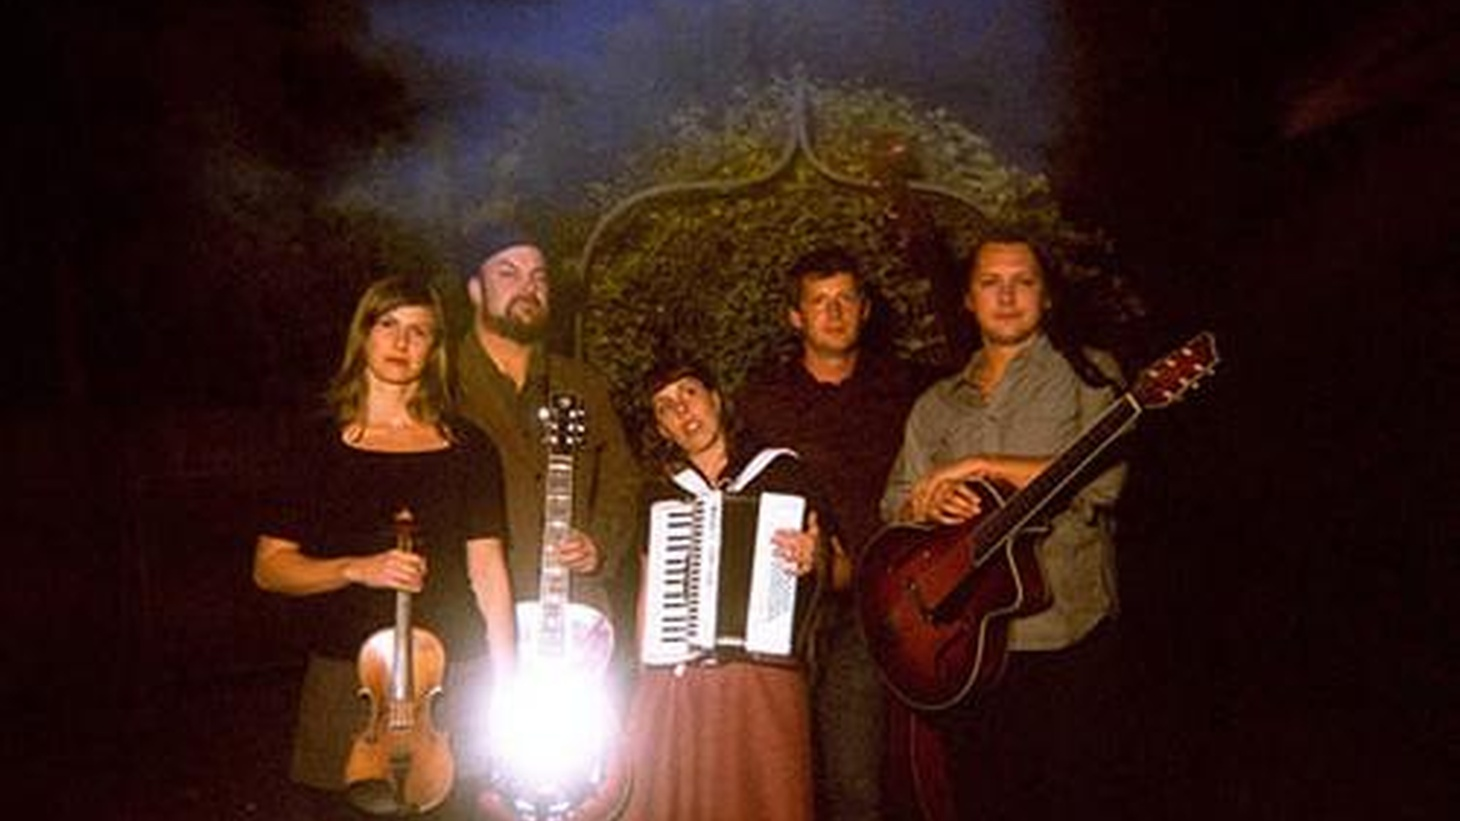 Members of The Decemberists have teamed up on a new project playing instrumental string band music. Expect to hear a lot of dobro, accordian and more when Black Prairie bring their unplugged sound to Morning Becomes Eclectic at 11:15am.